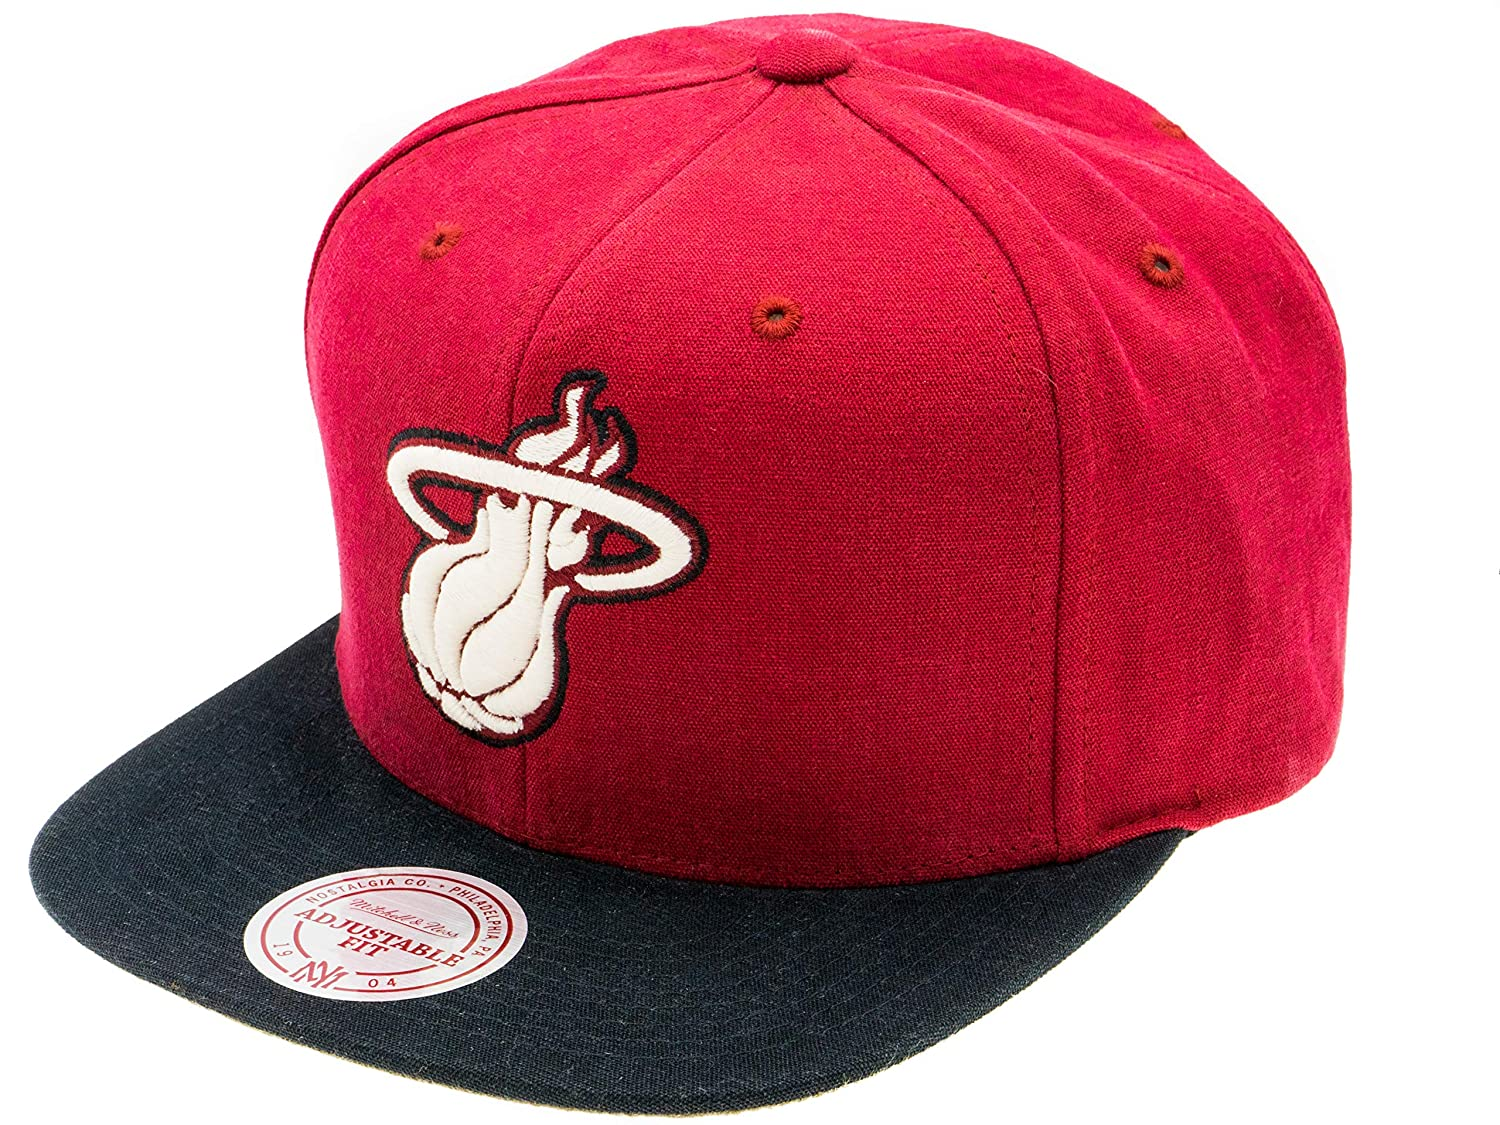 Mitchell & Ness Miami Heat NBA Gorra: Amazon.es: Deportes y aire libre